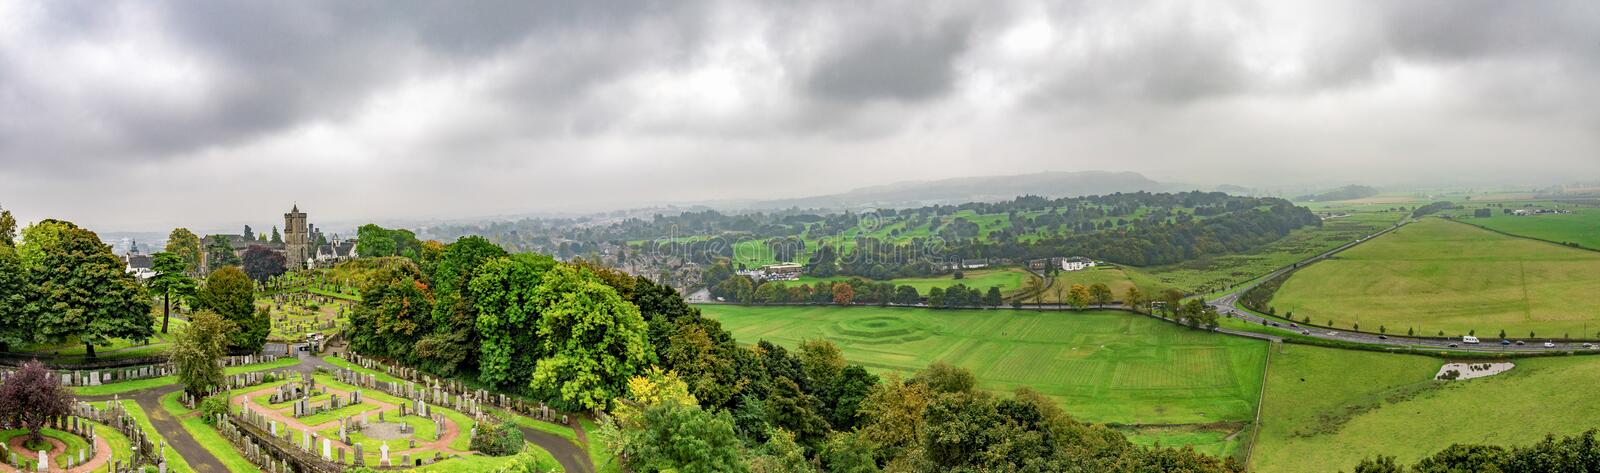 Panoramic view of countryside and old cemetery from Stirling Castle, Scotland stock images